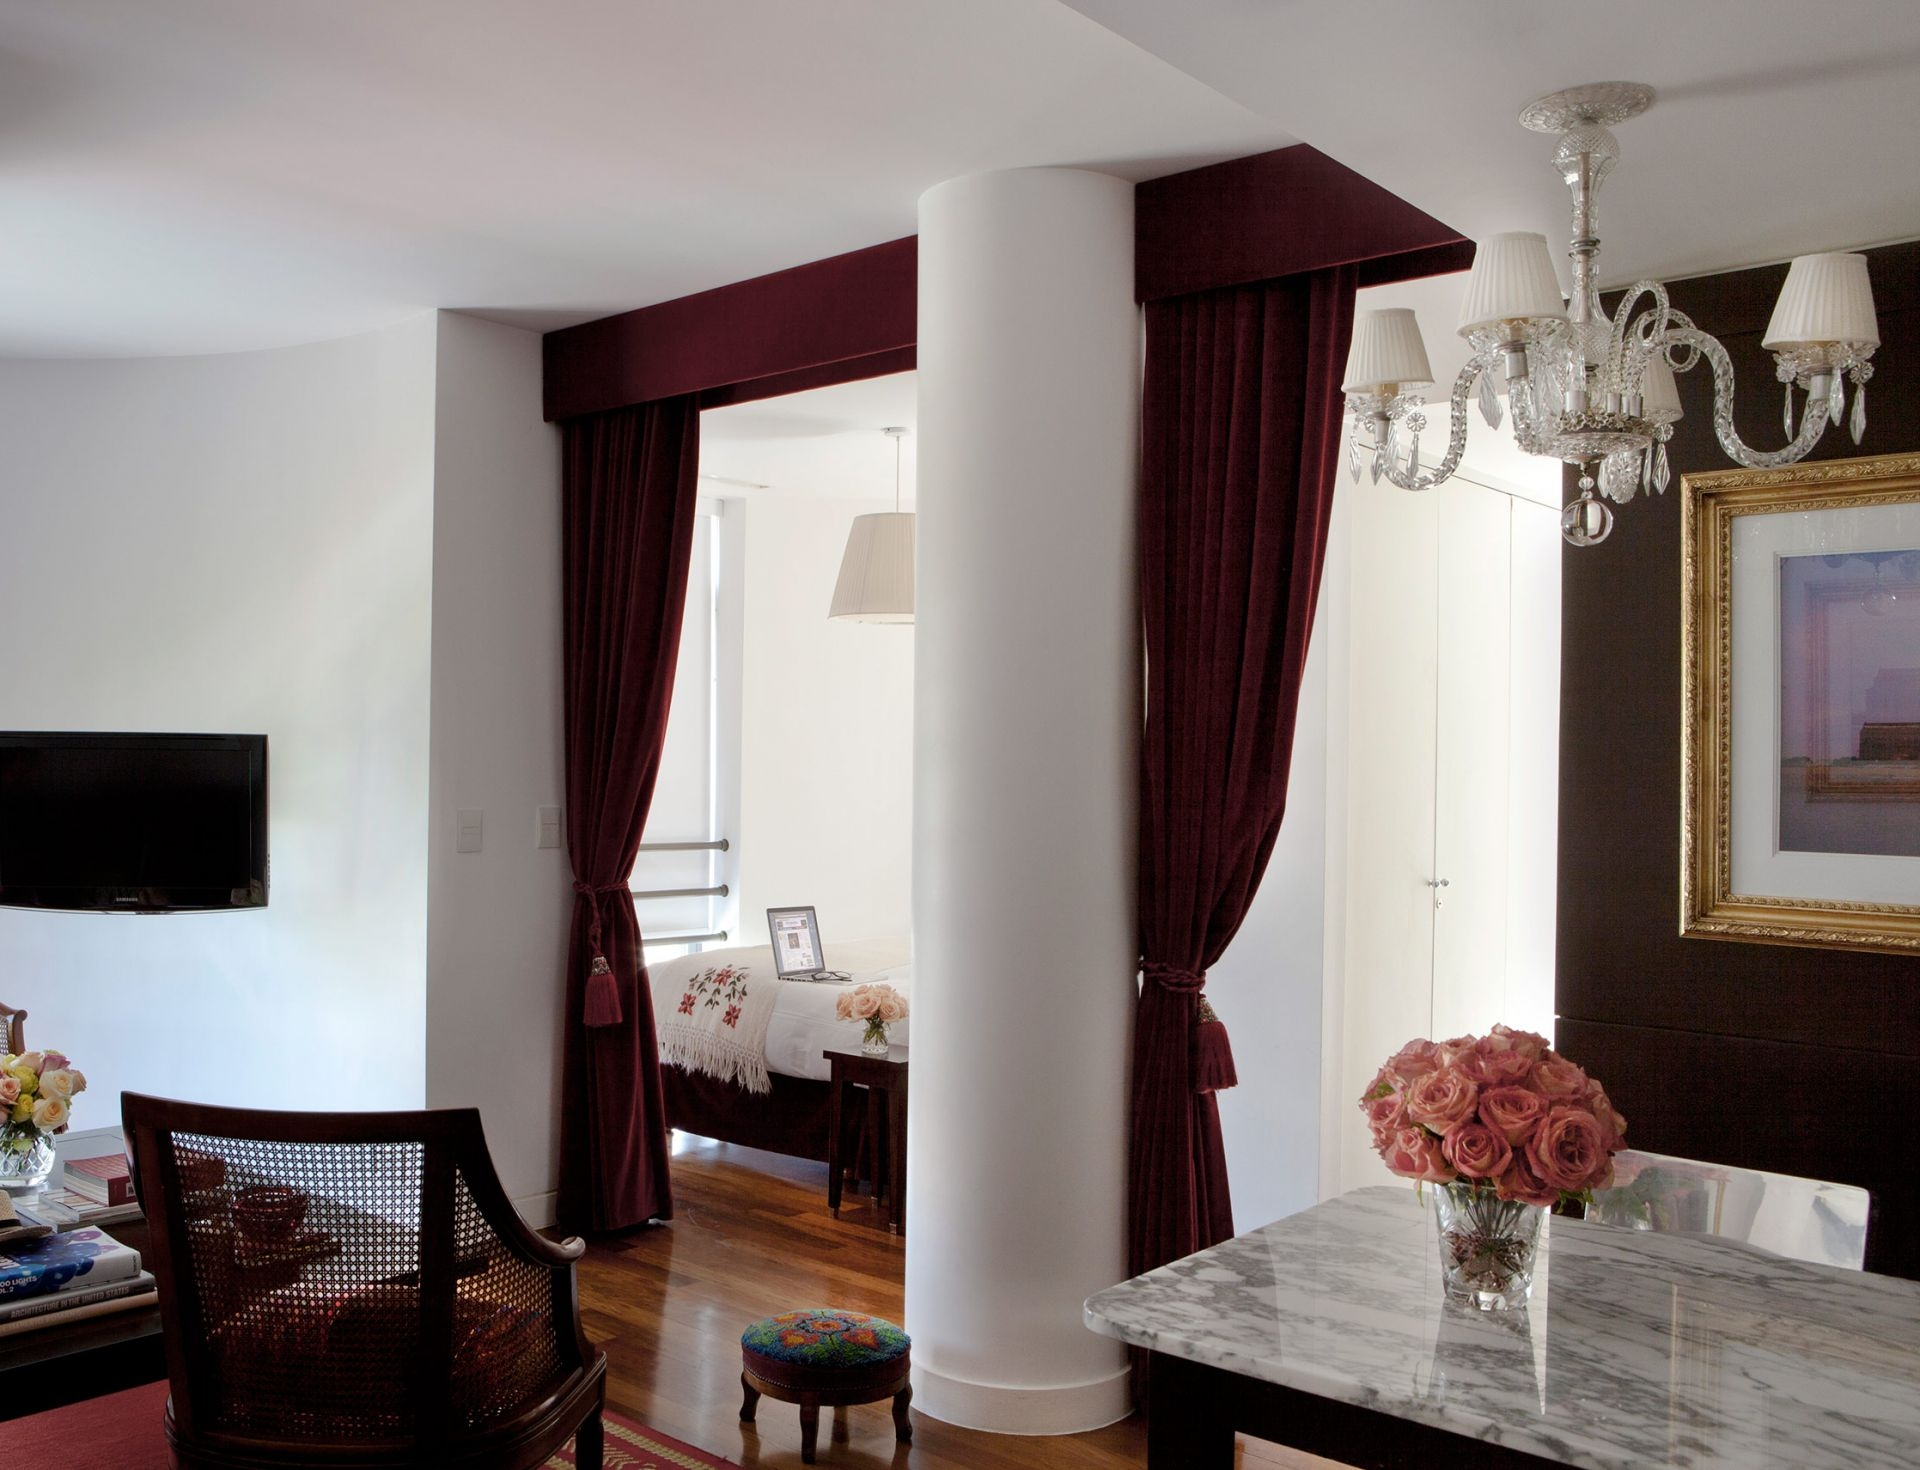 hotel studio room with large column and velvet curtains